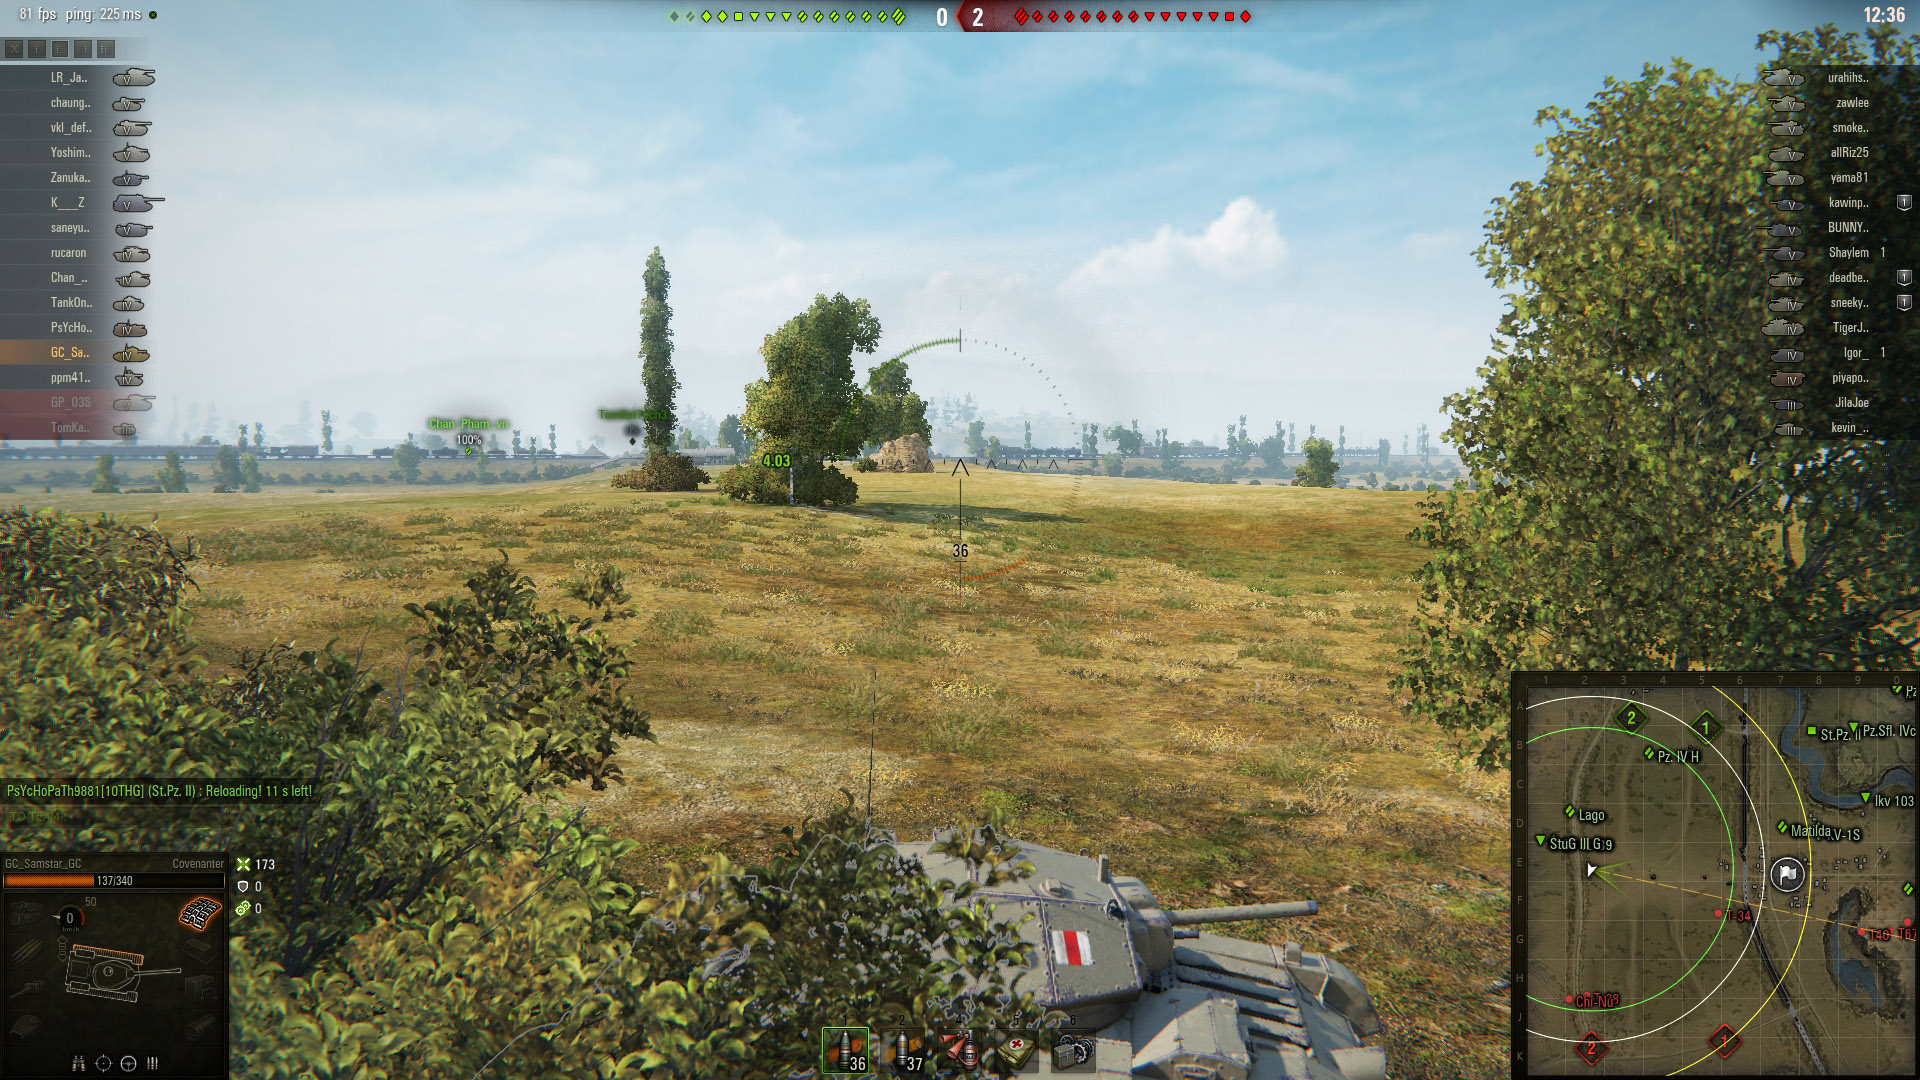 Shooting from the sidelines is the best option with the Covenanter.